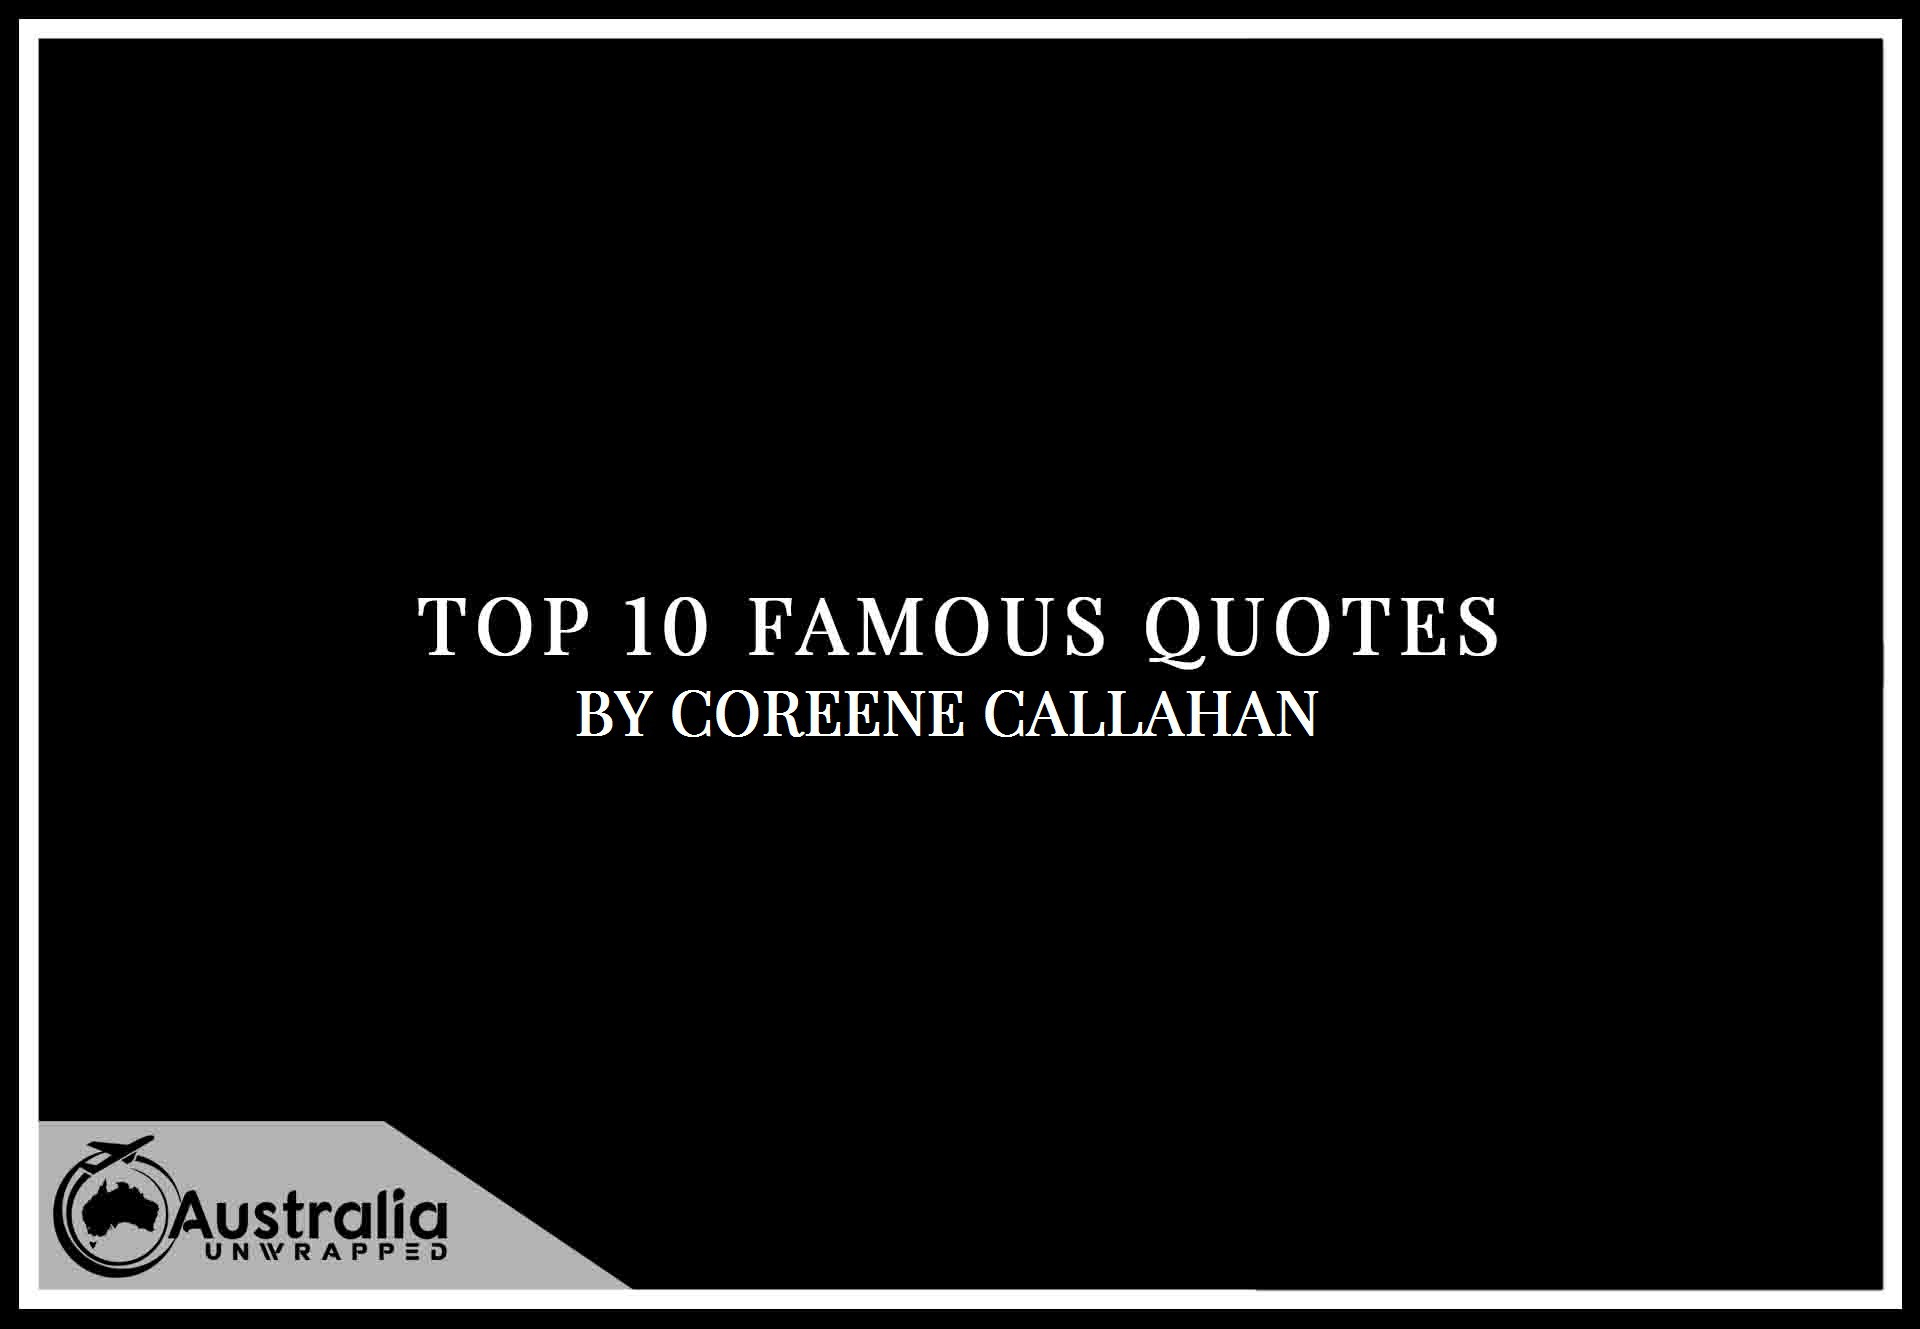 Coreene Callahan's Top 10 Popular and Famous Quotes